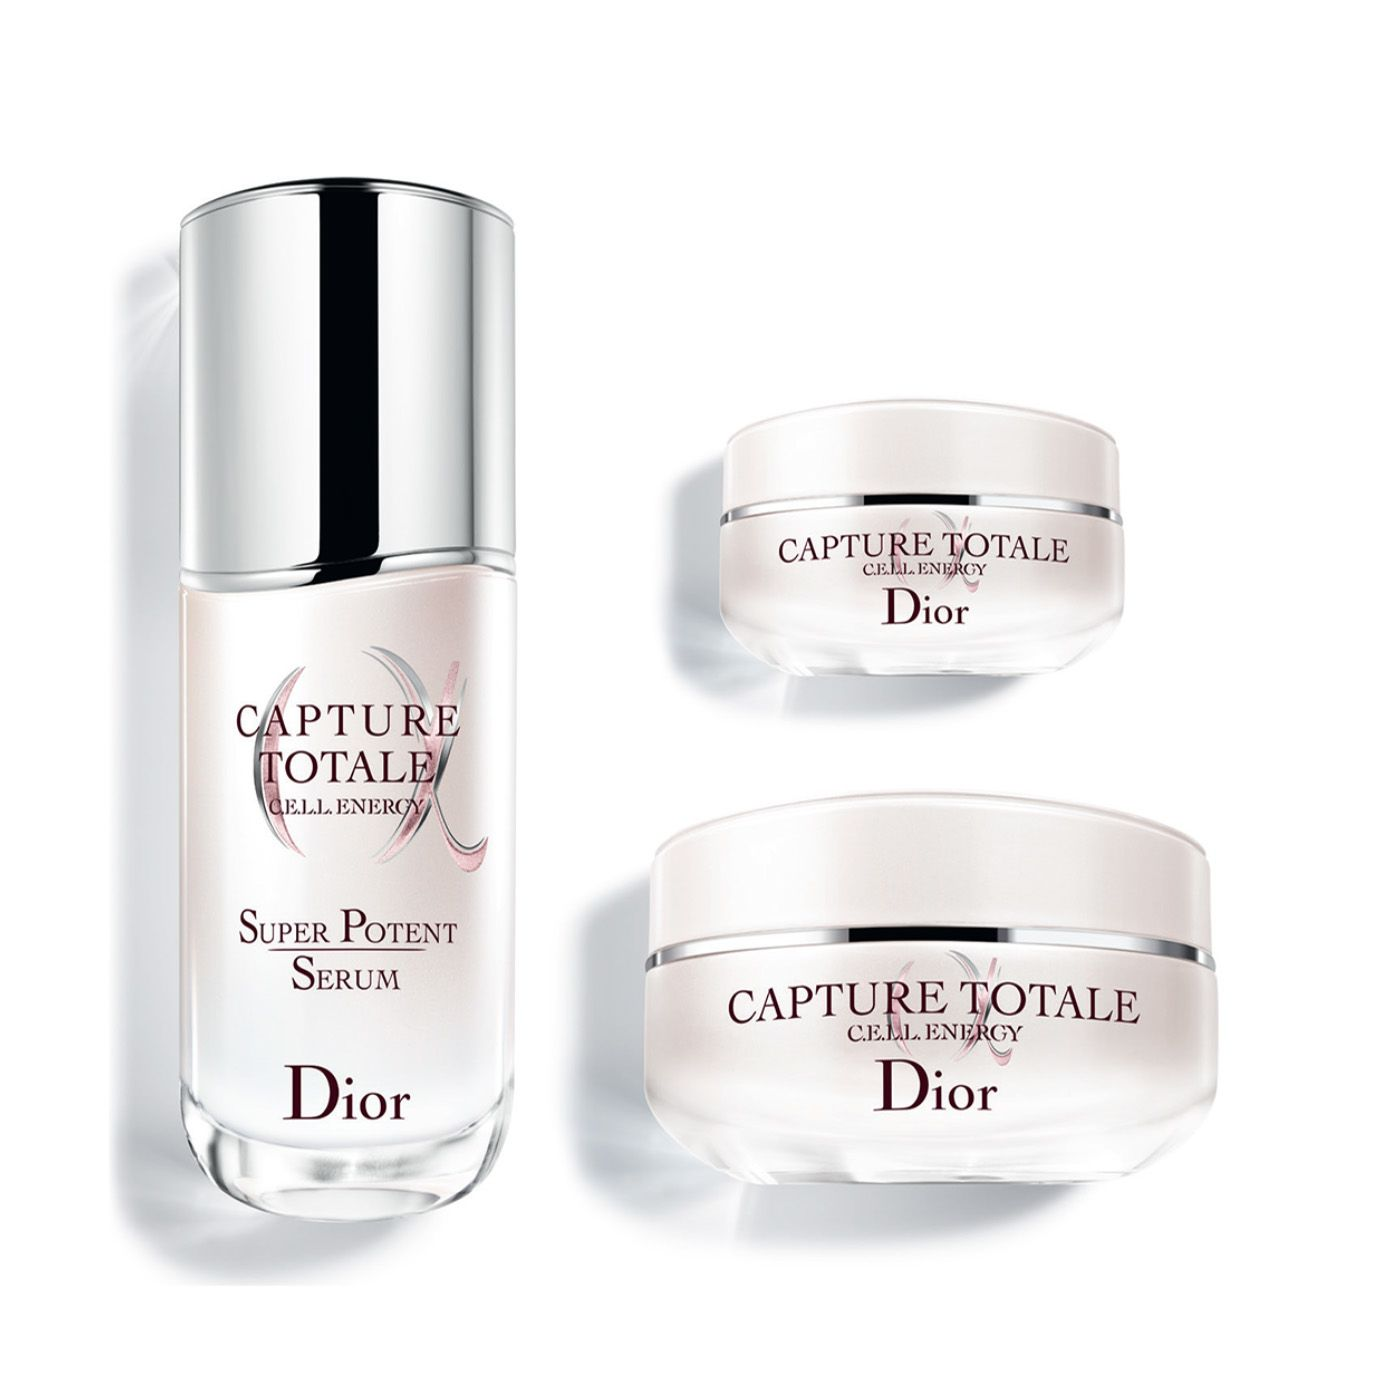 Capture Totale Cell Energy Firming Wrinkle Correcting by Dior #11